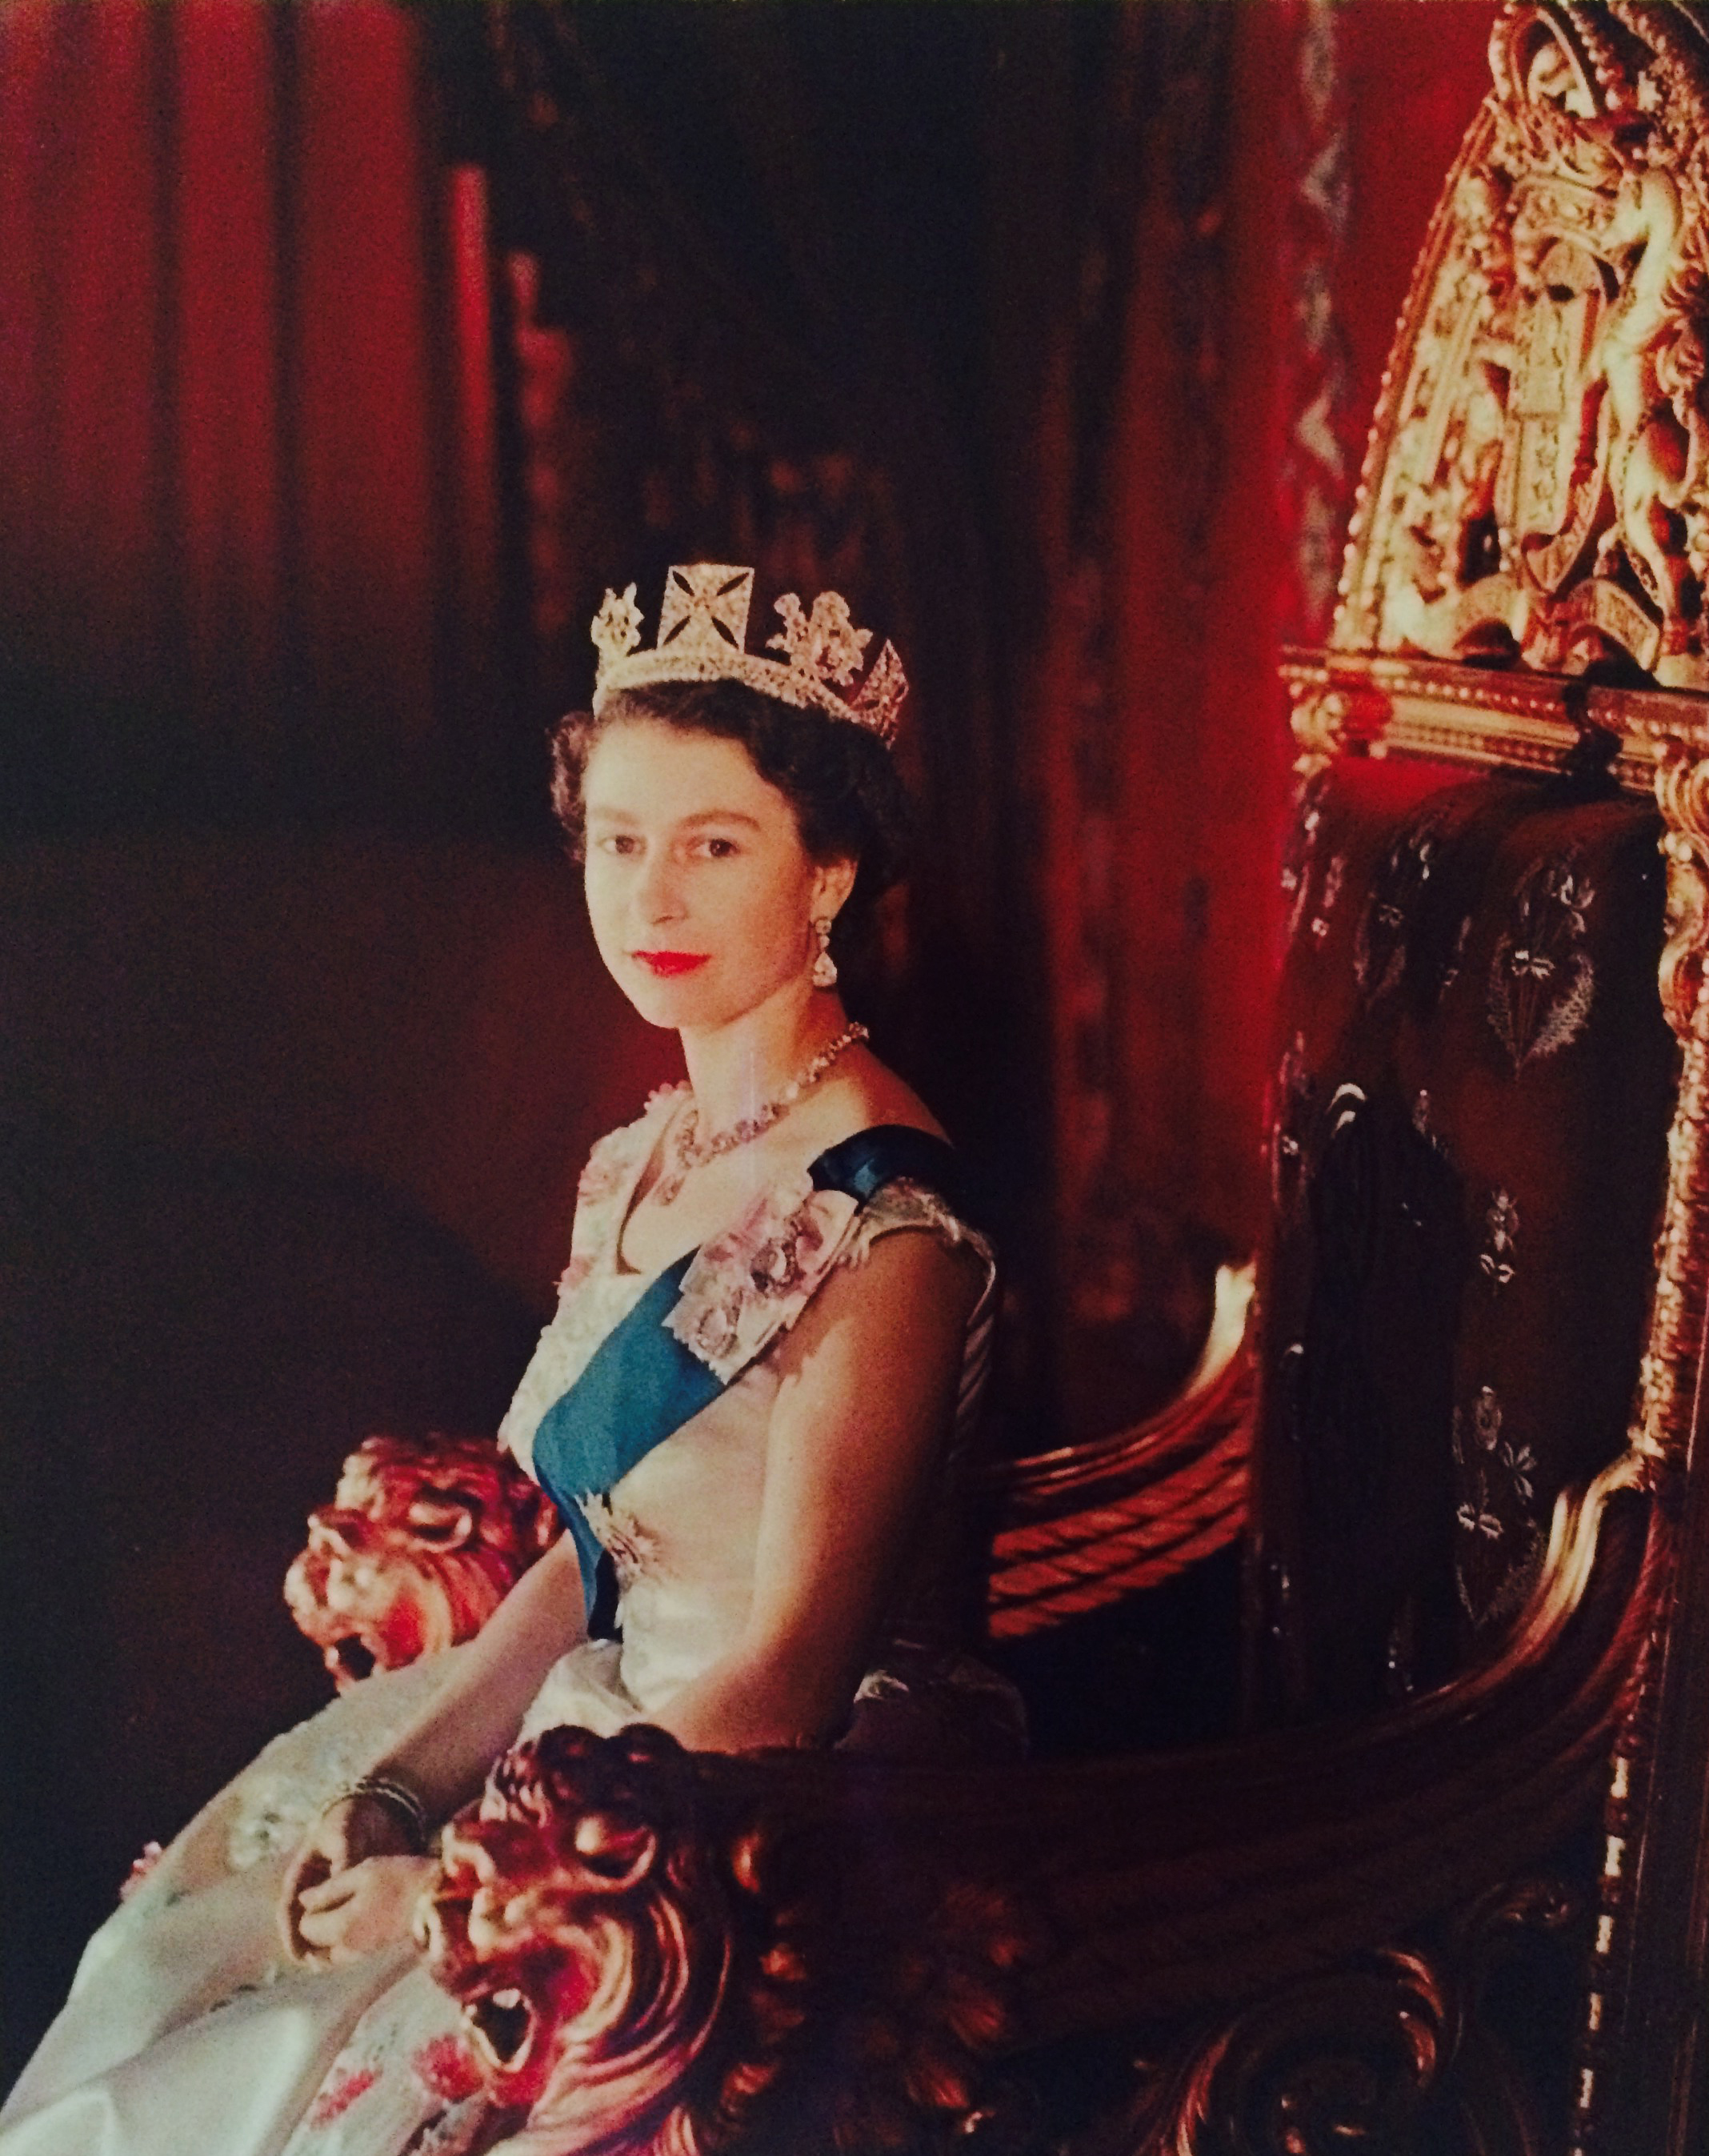 Cecil Beaton: The Queen on her Coronation